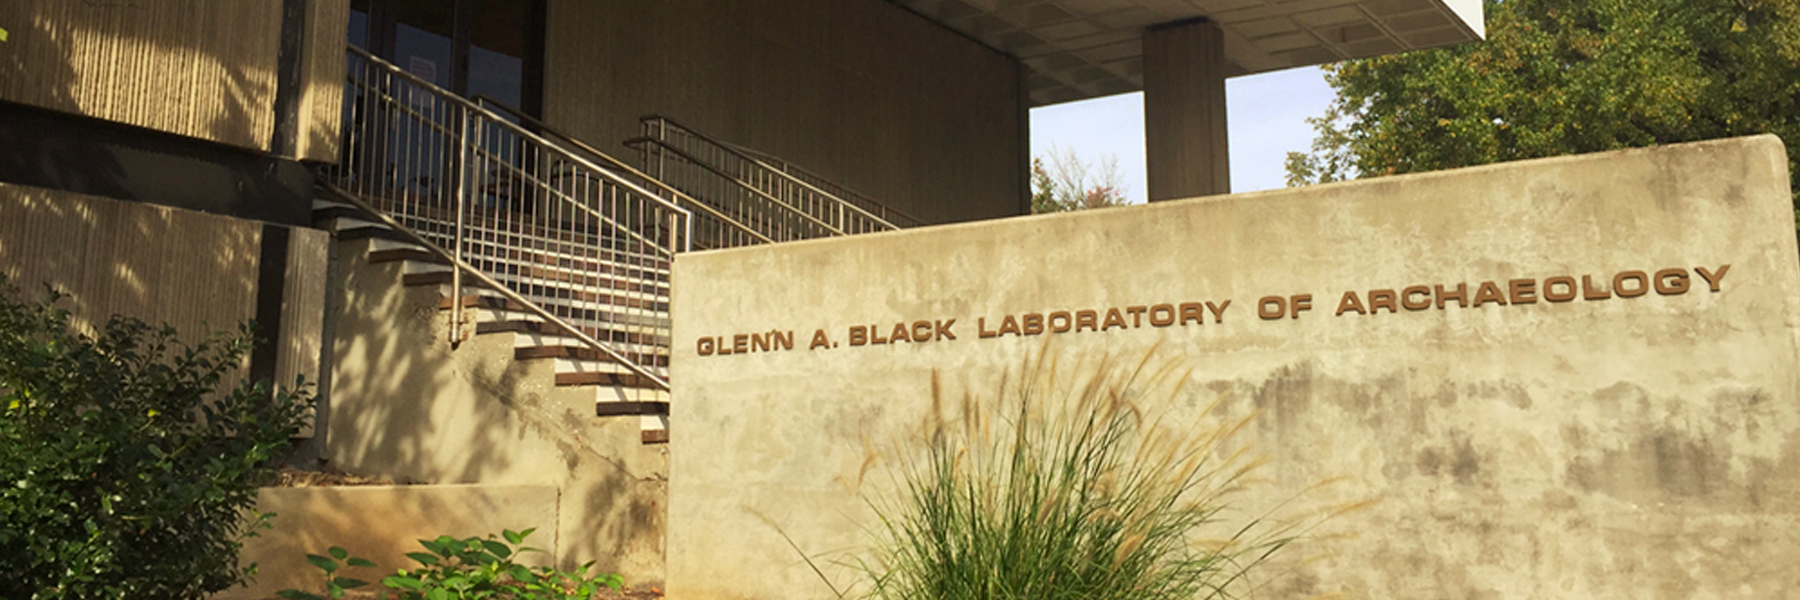 Entrance to the Glen A. Black Lab of Archaeology